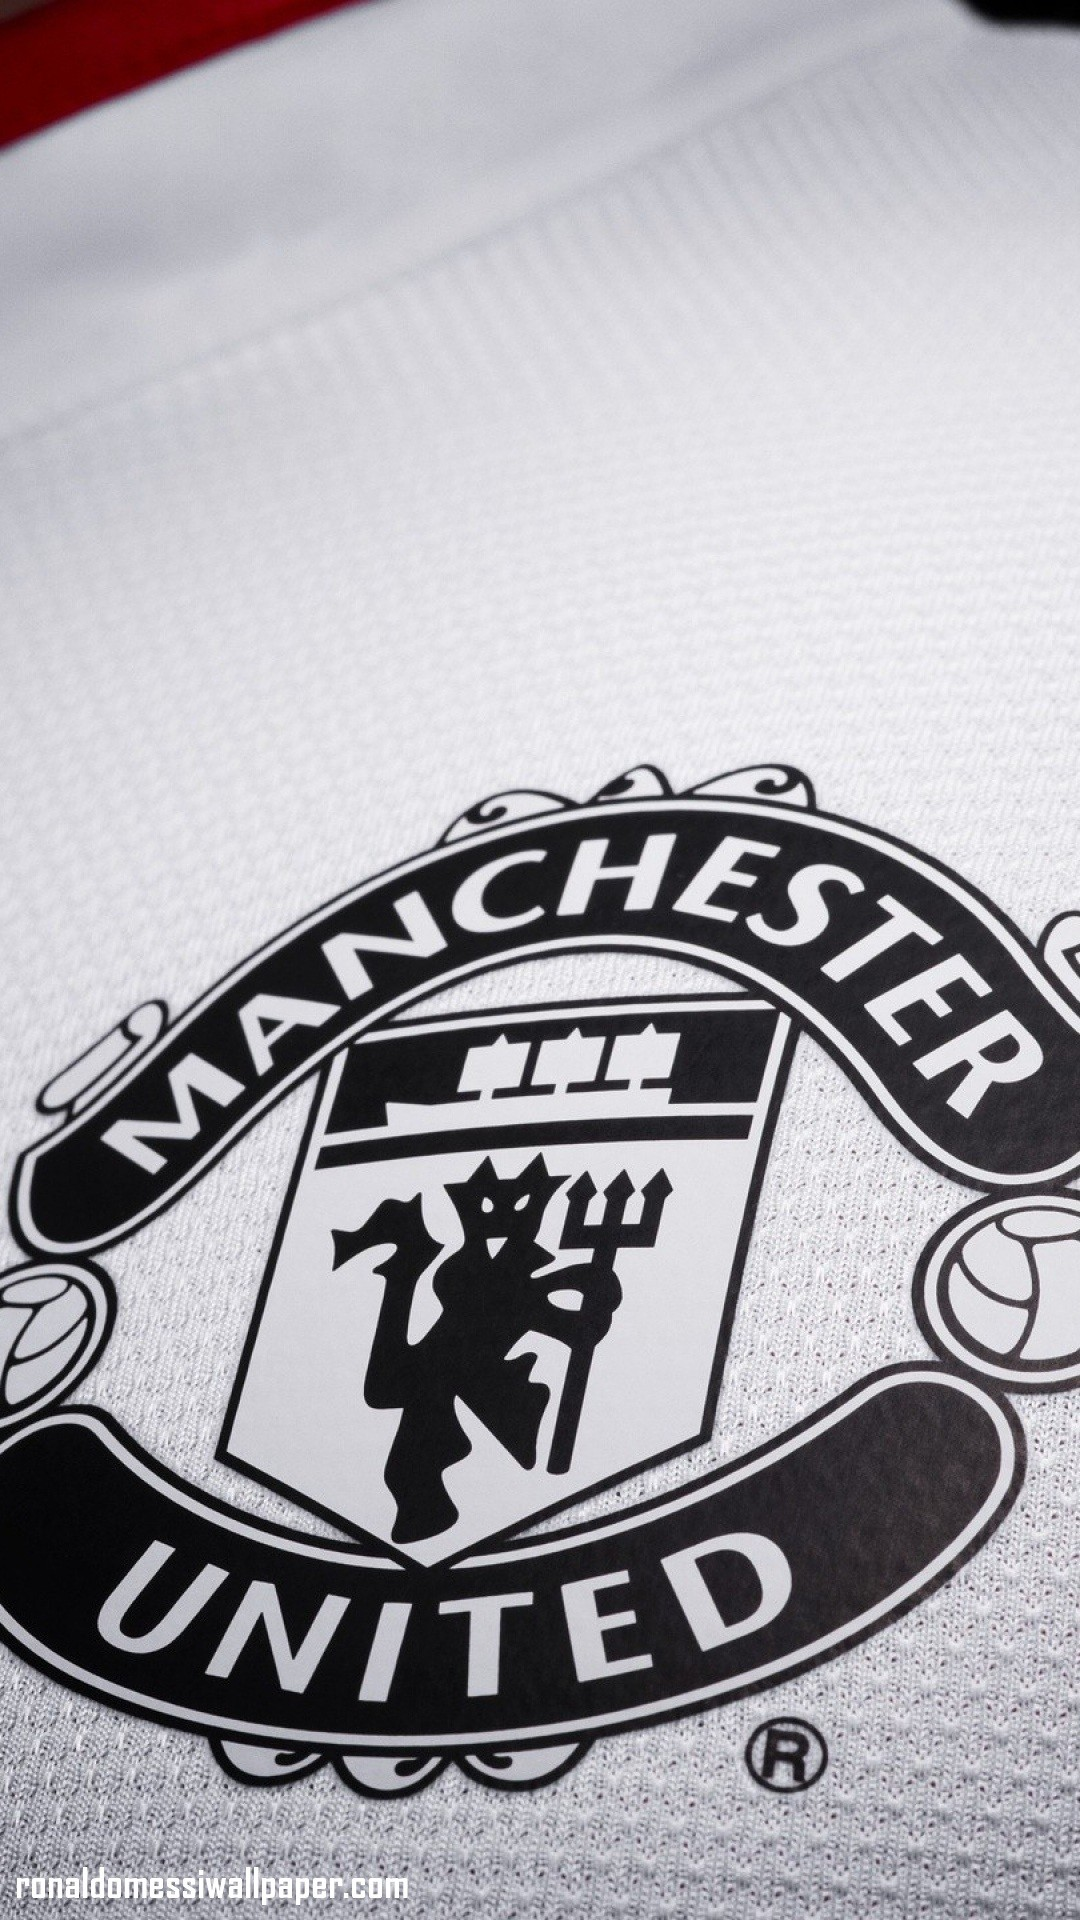 1080x1920 Manchester United Wallpapers for Mobile Wallpaper Hd